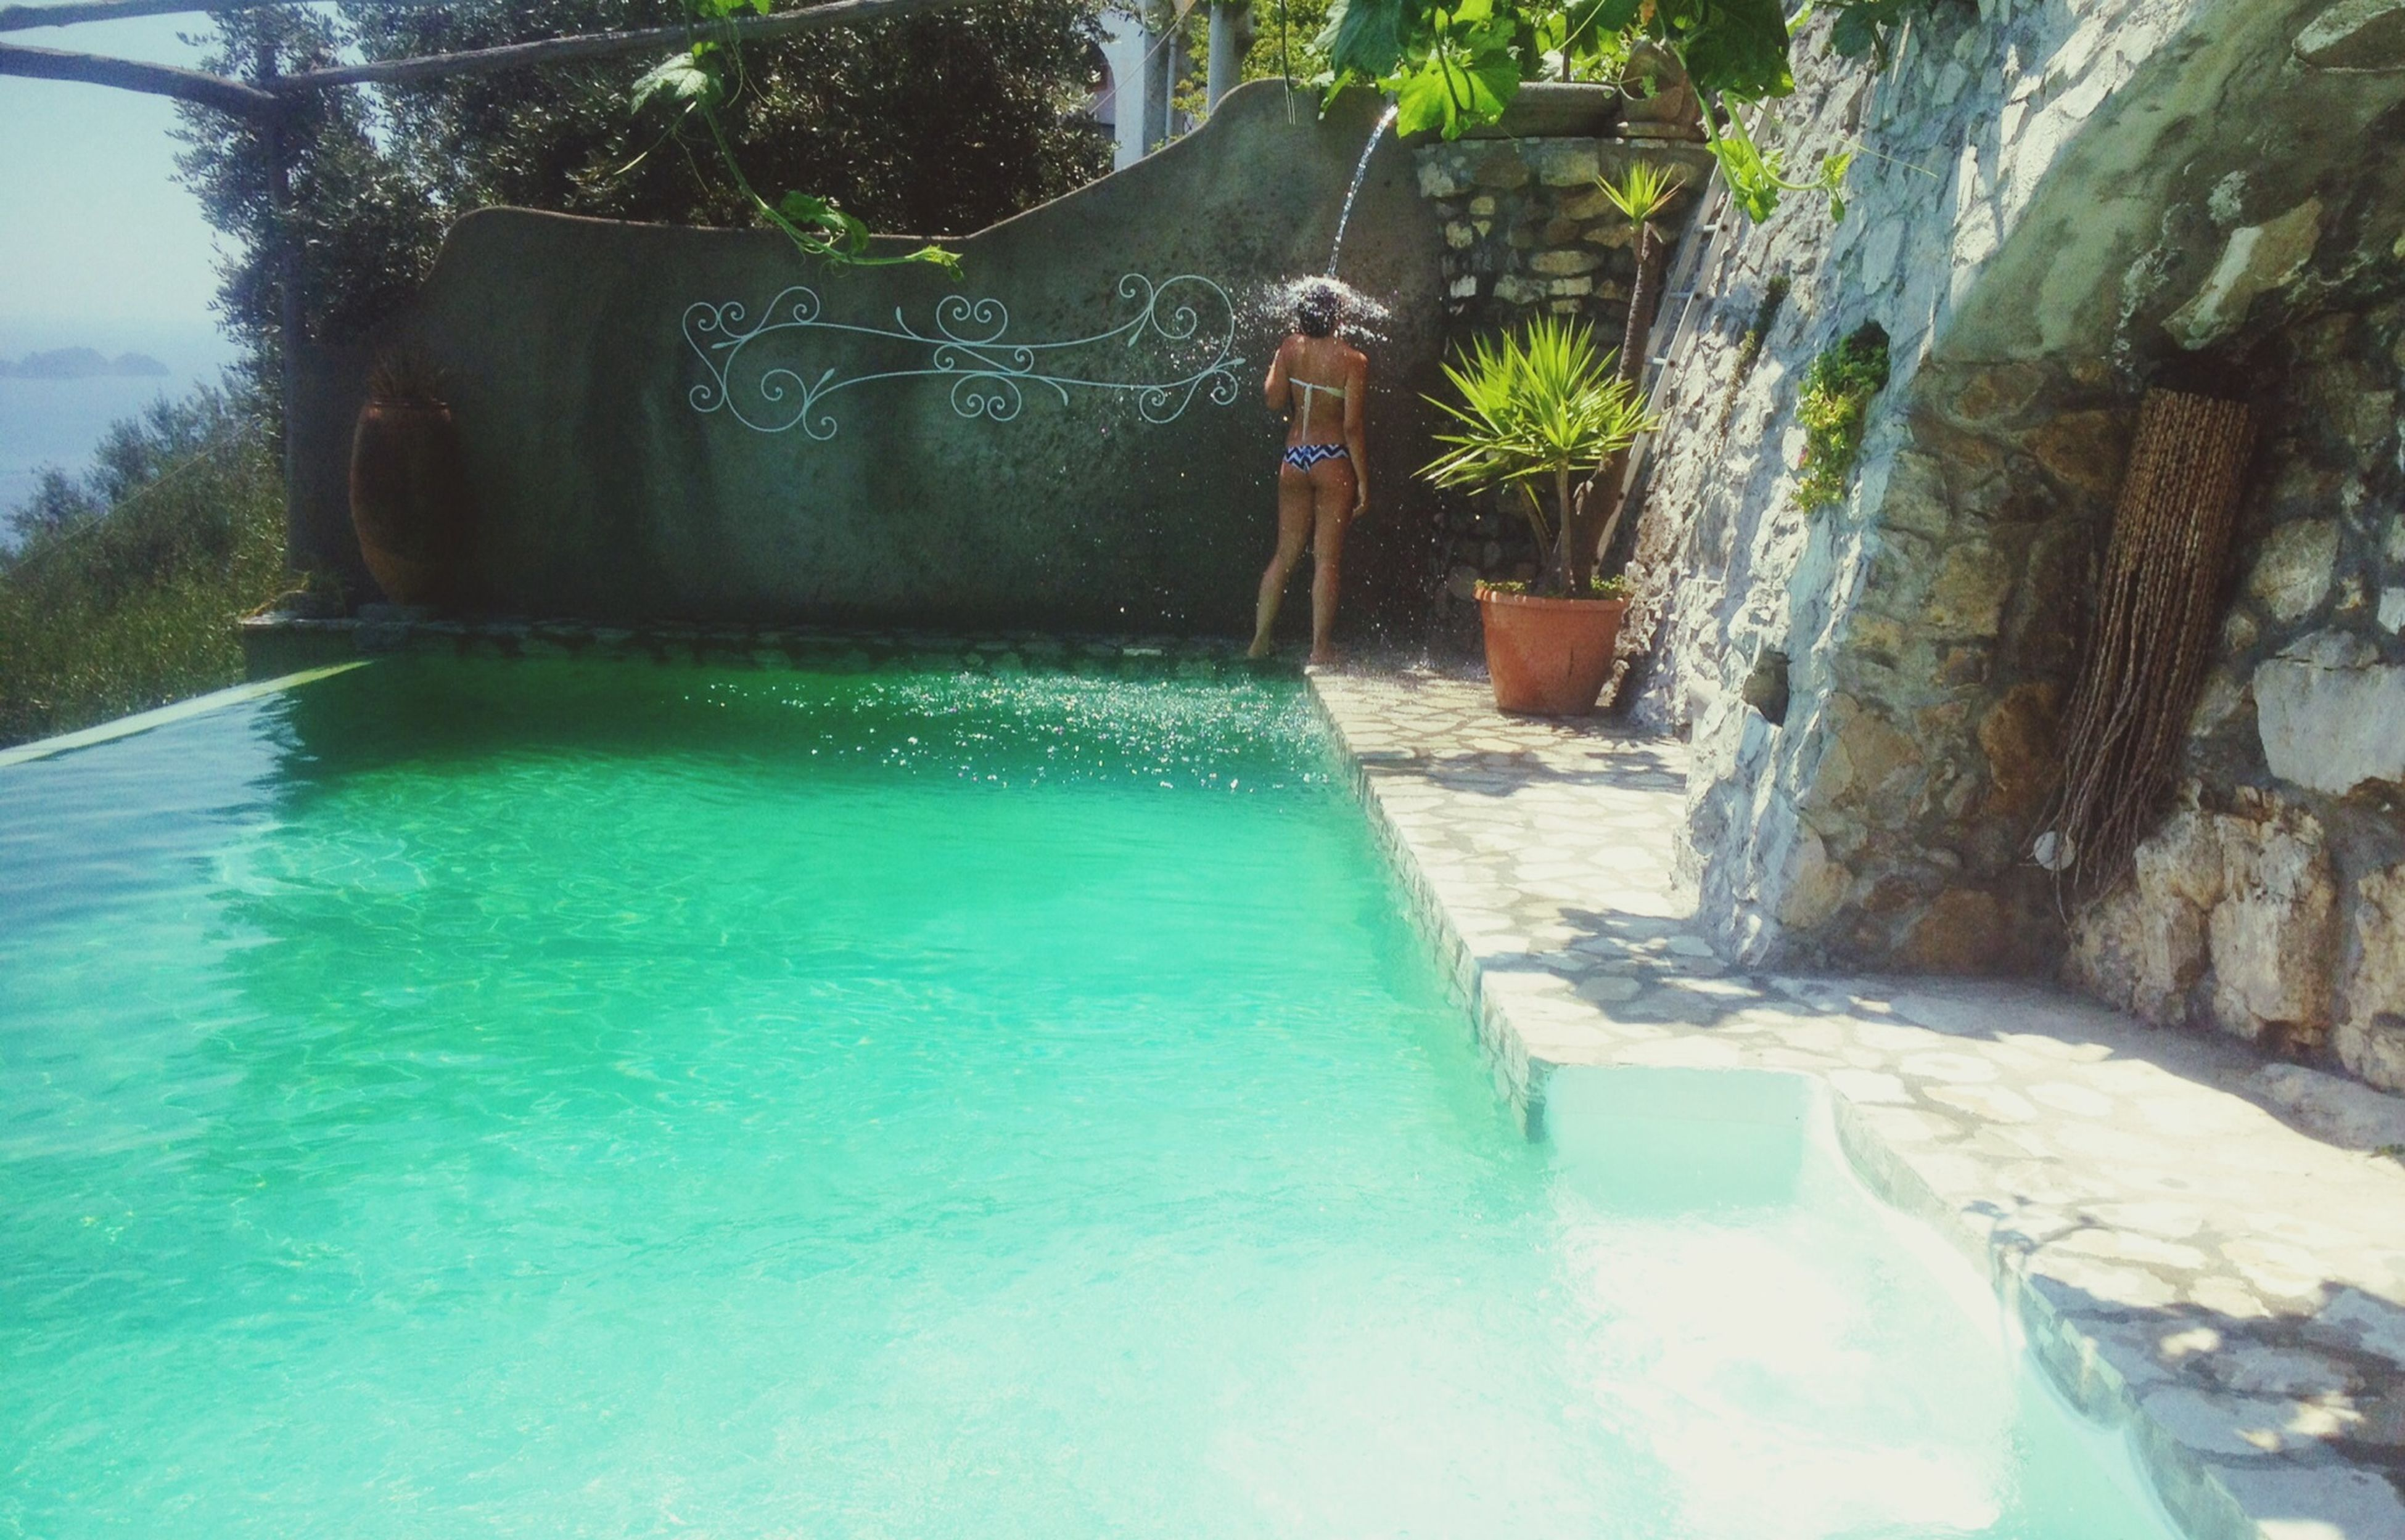 water, swimming pool, waterfront, motion, built structure, tree, building exterior, lifestyles, architecture, blue, sea, leisure activity, splashing, sunlight, day, outdoors, nature, rock - object